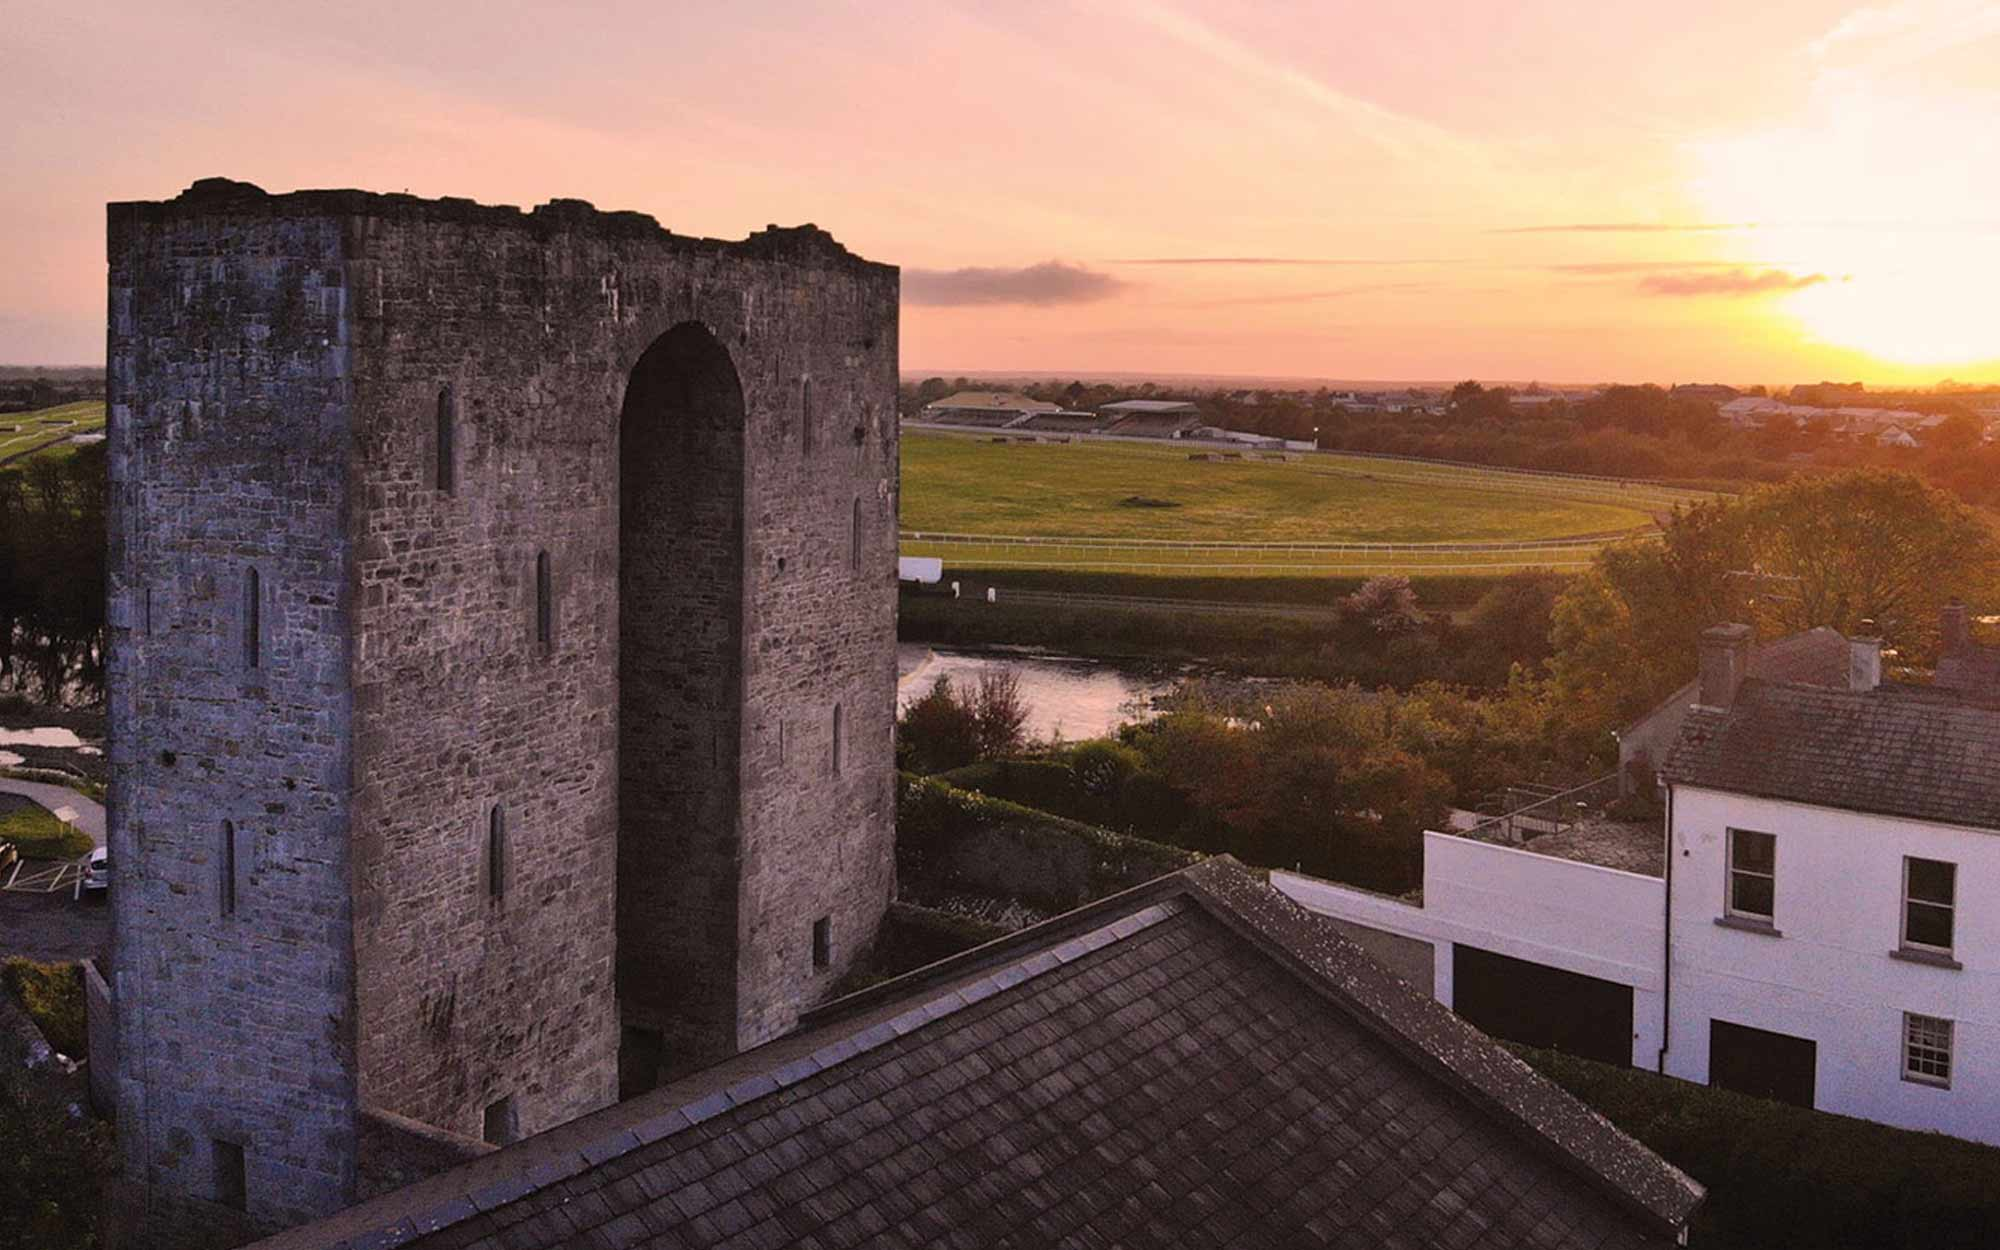 Sunset at Listowel Castle